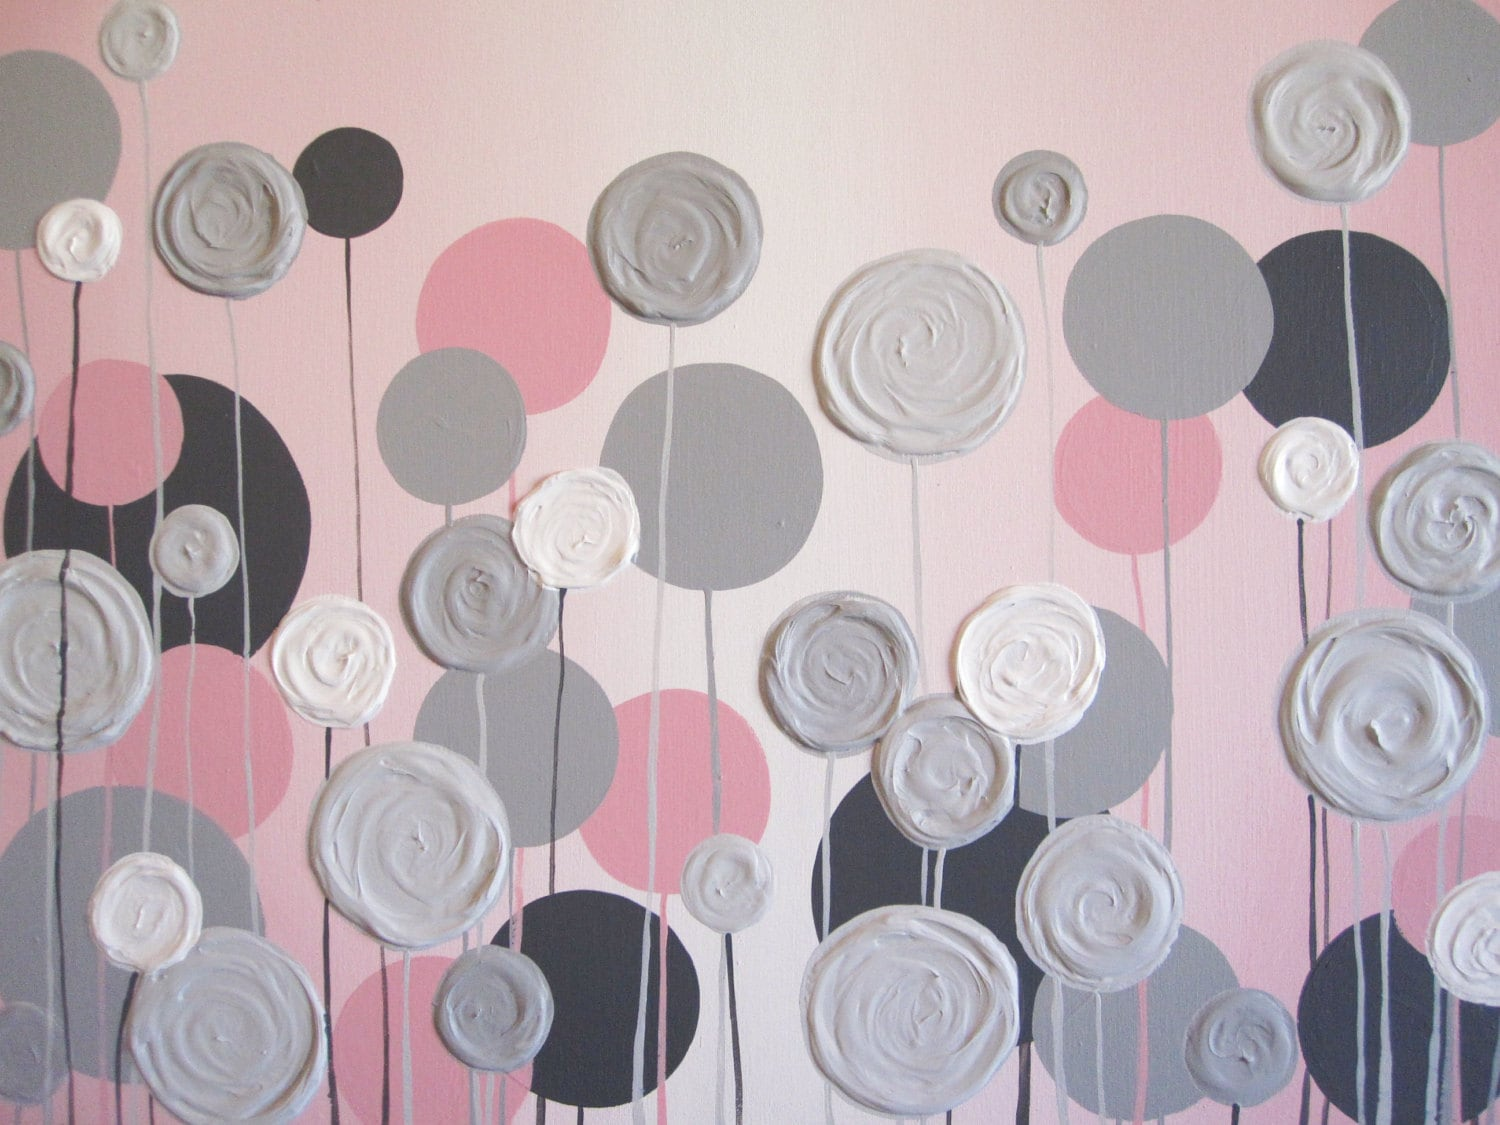 Grey And Pink Nursery Wall Art Pink With Grey Textured Flowers Acrylic